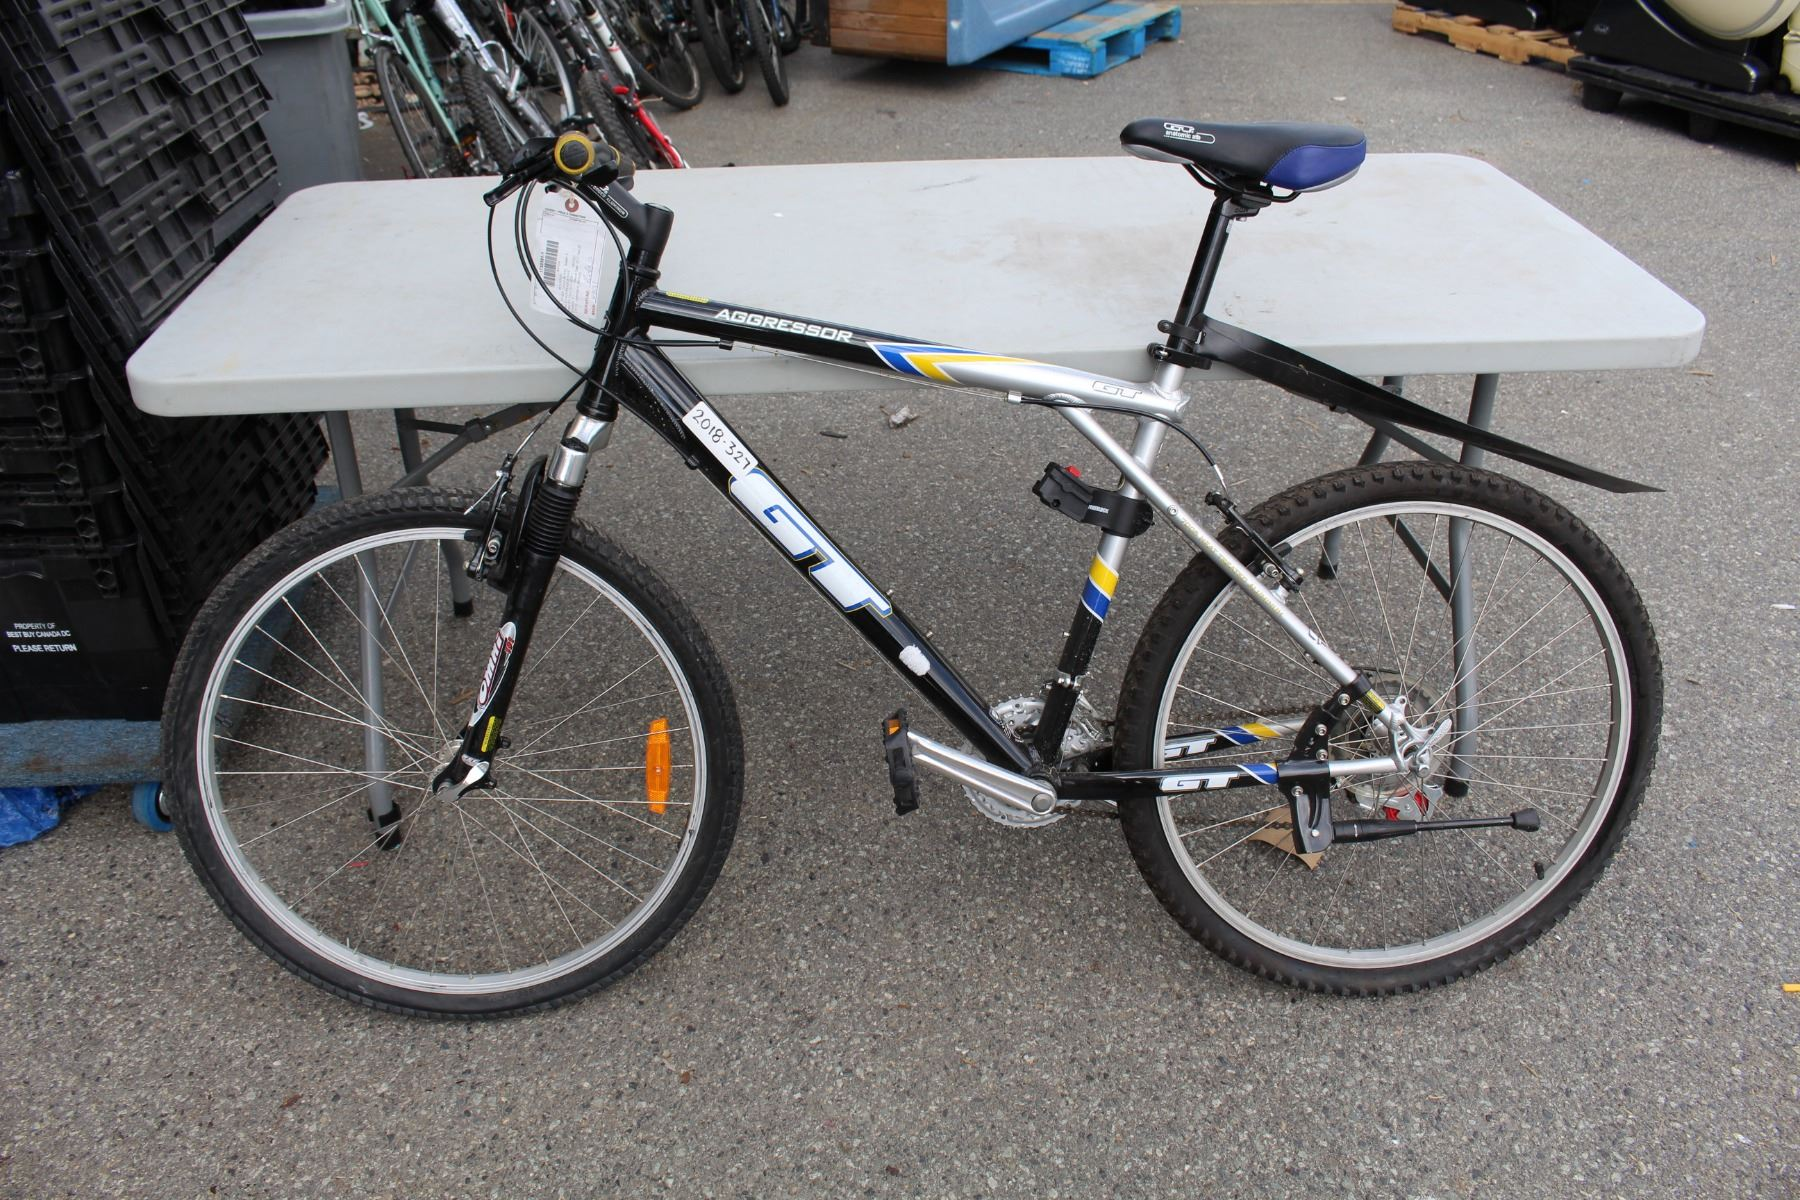 Aggressor Gt Black Yellow And Silver Mens Mountain Bike